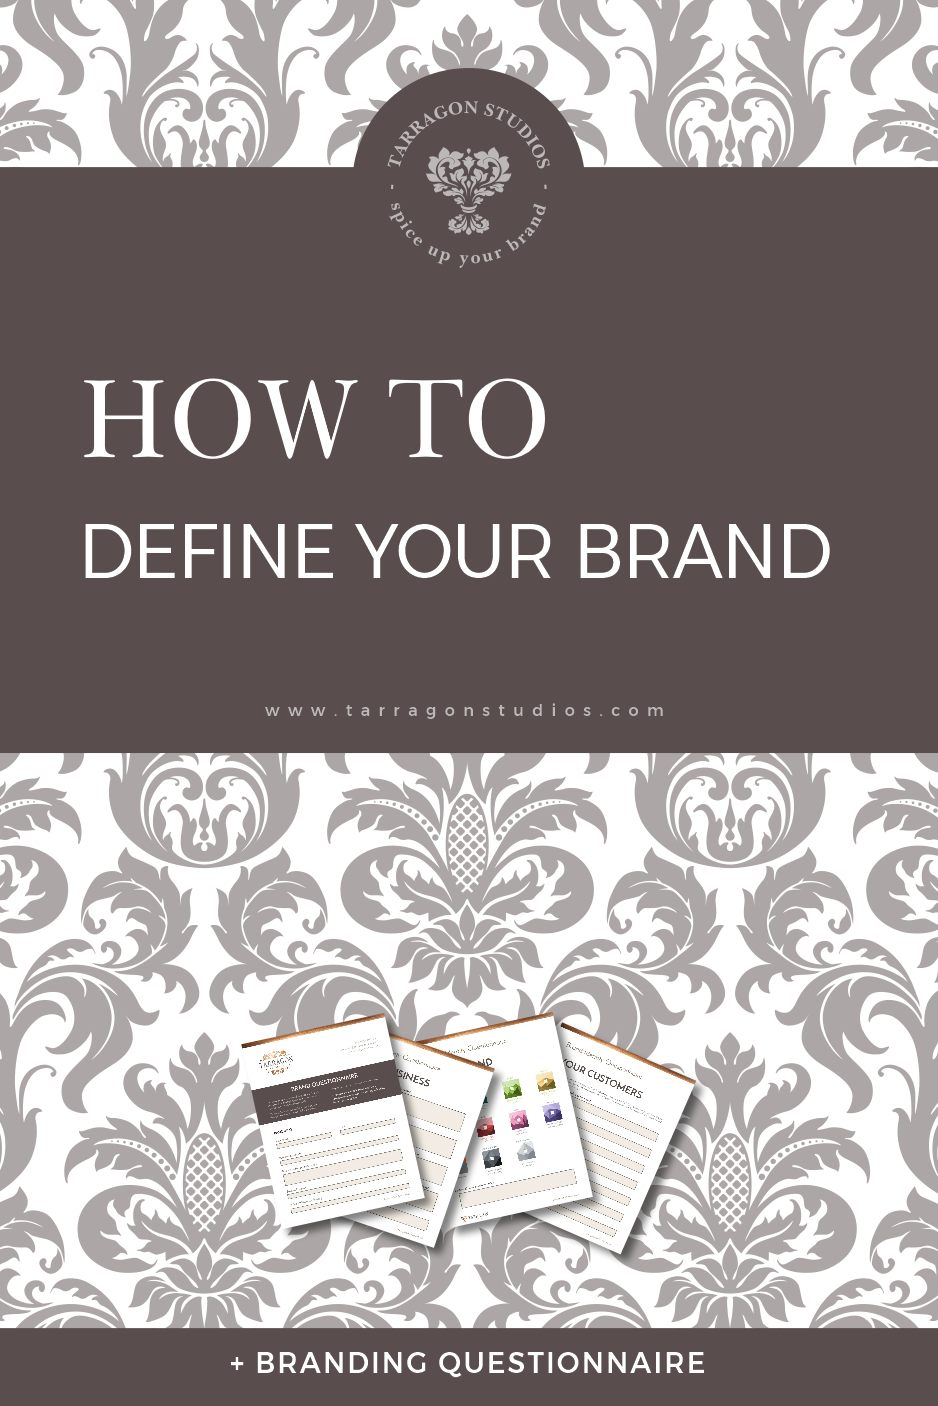 How to define your brand + free branding questionnaire. Click the image to download your free branding questionnaire!